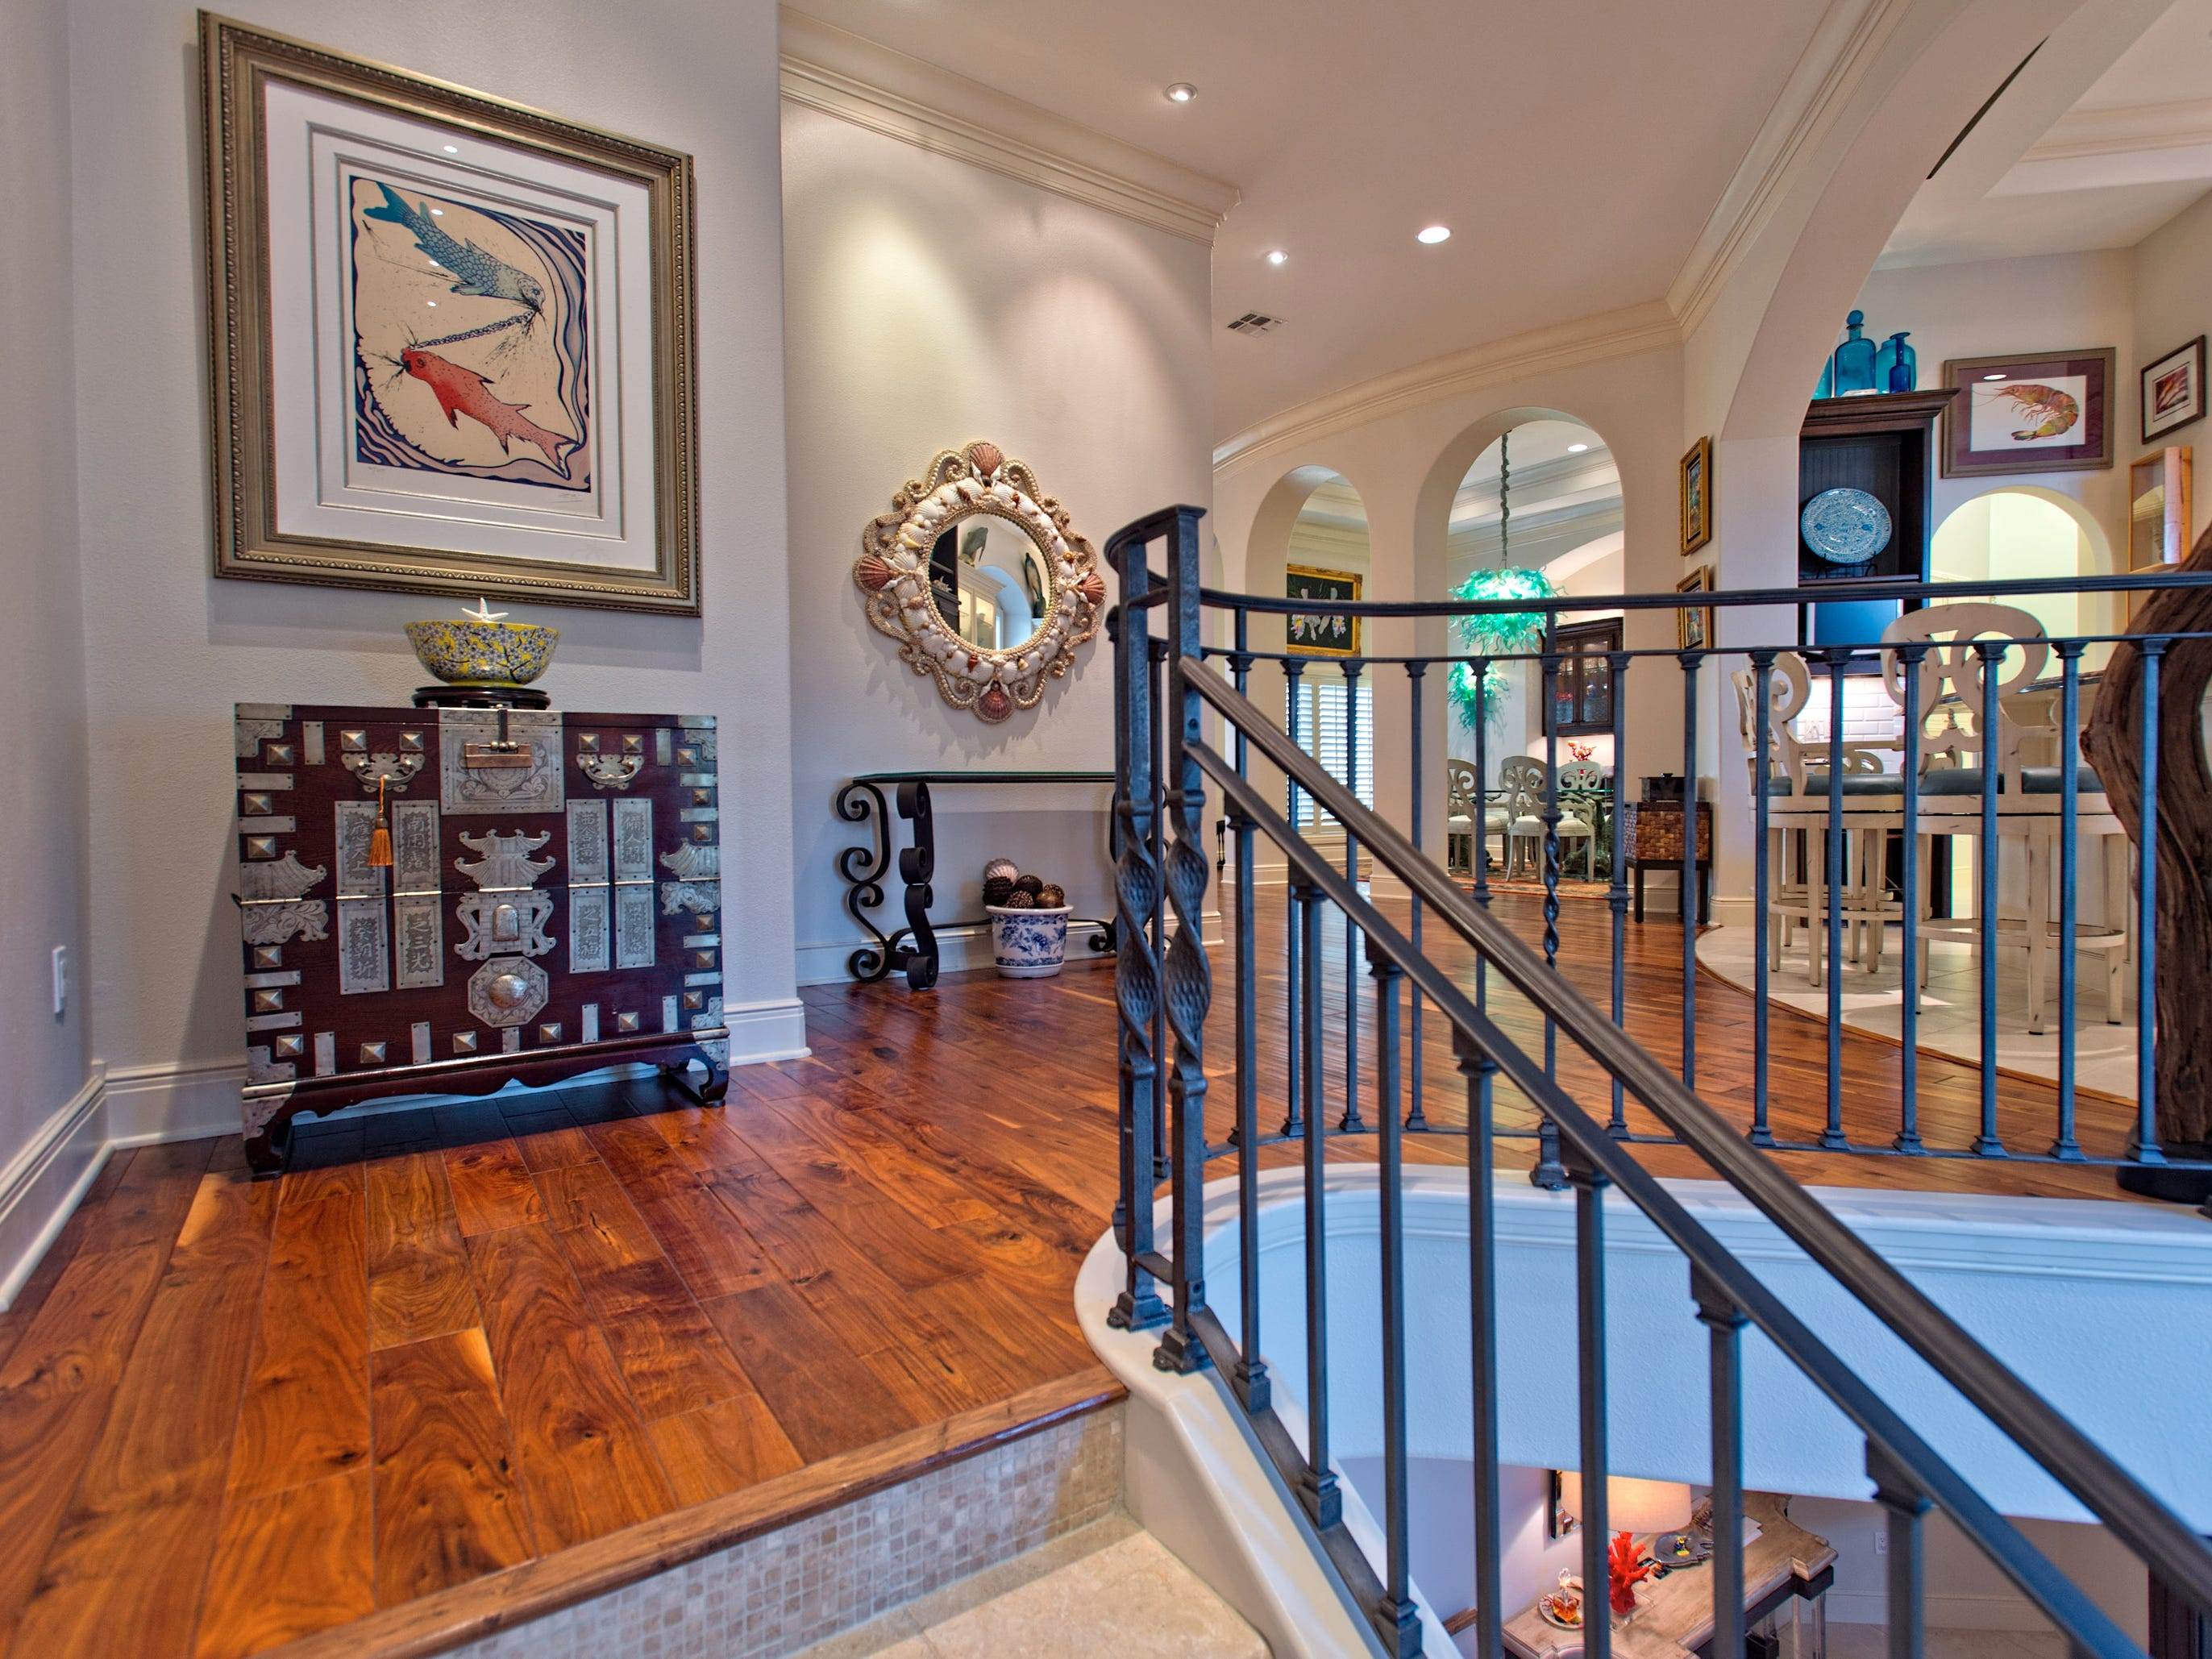 A winding tiled iron railed stair way takes you up to the second floor's generous landing, the kitchen, dinning room and beyond.